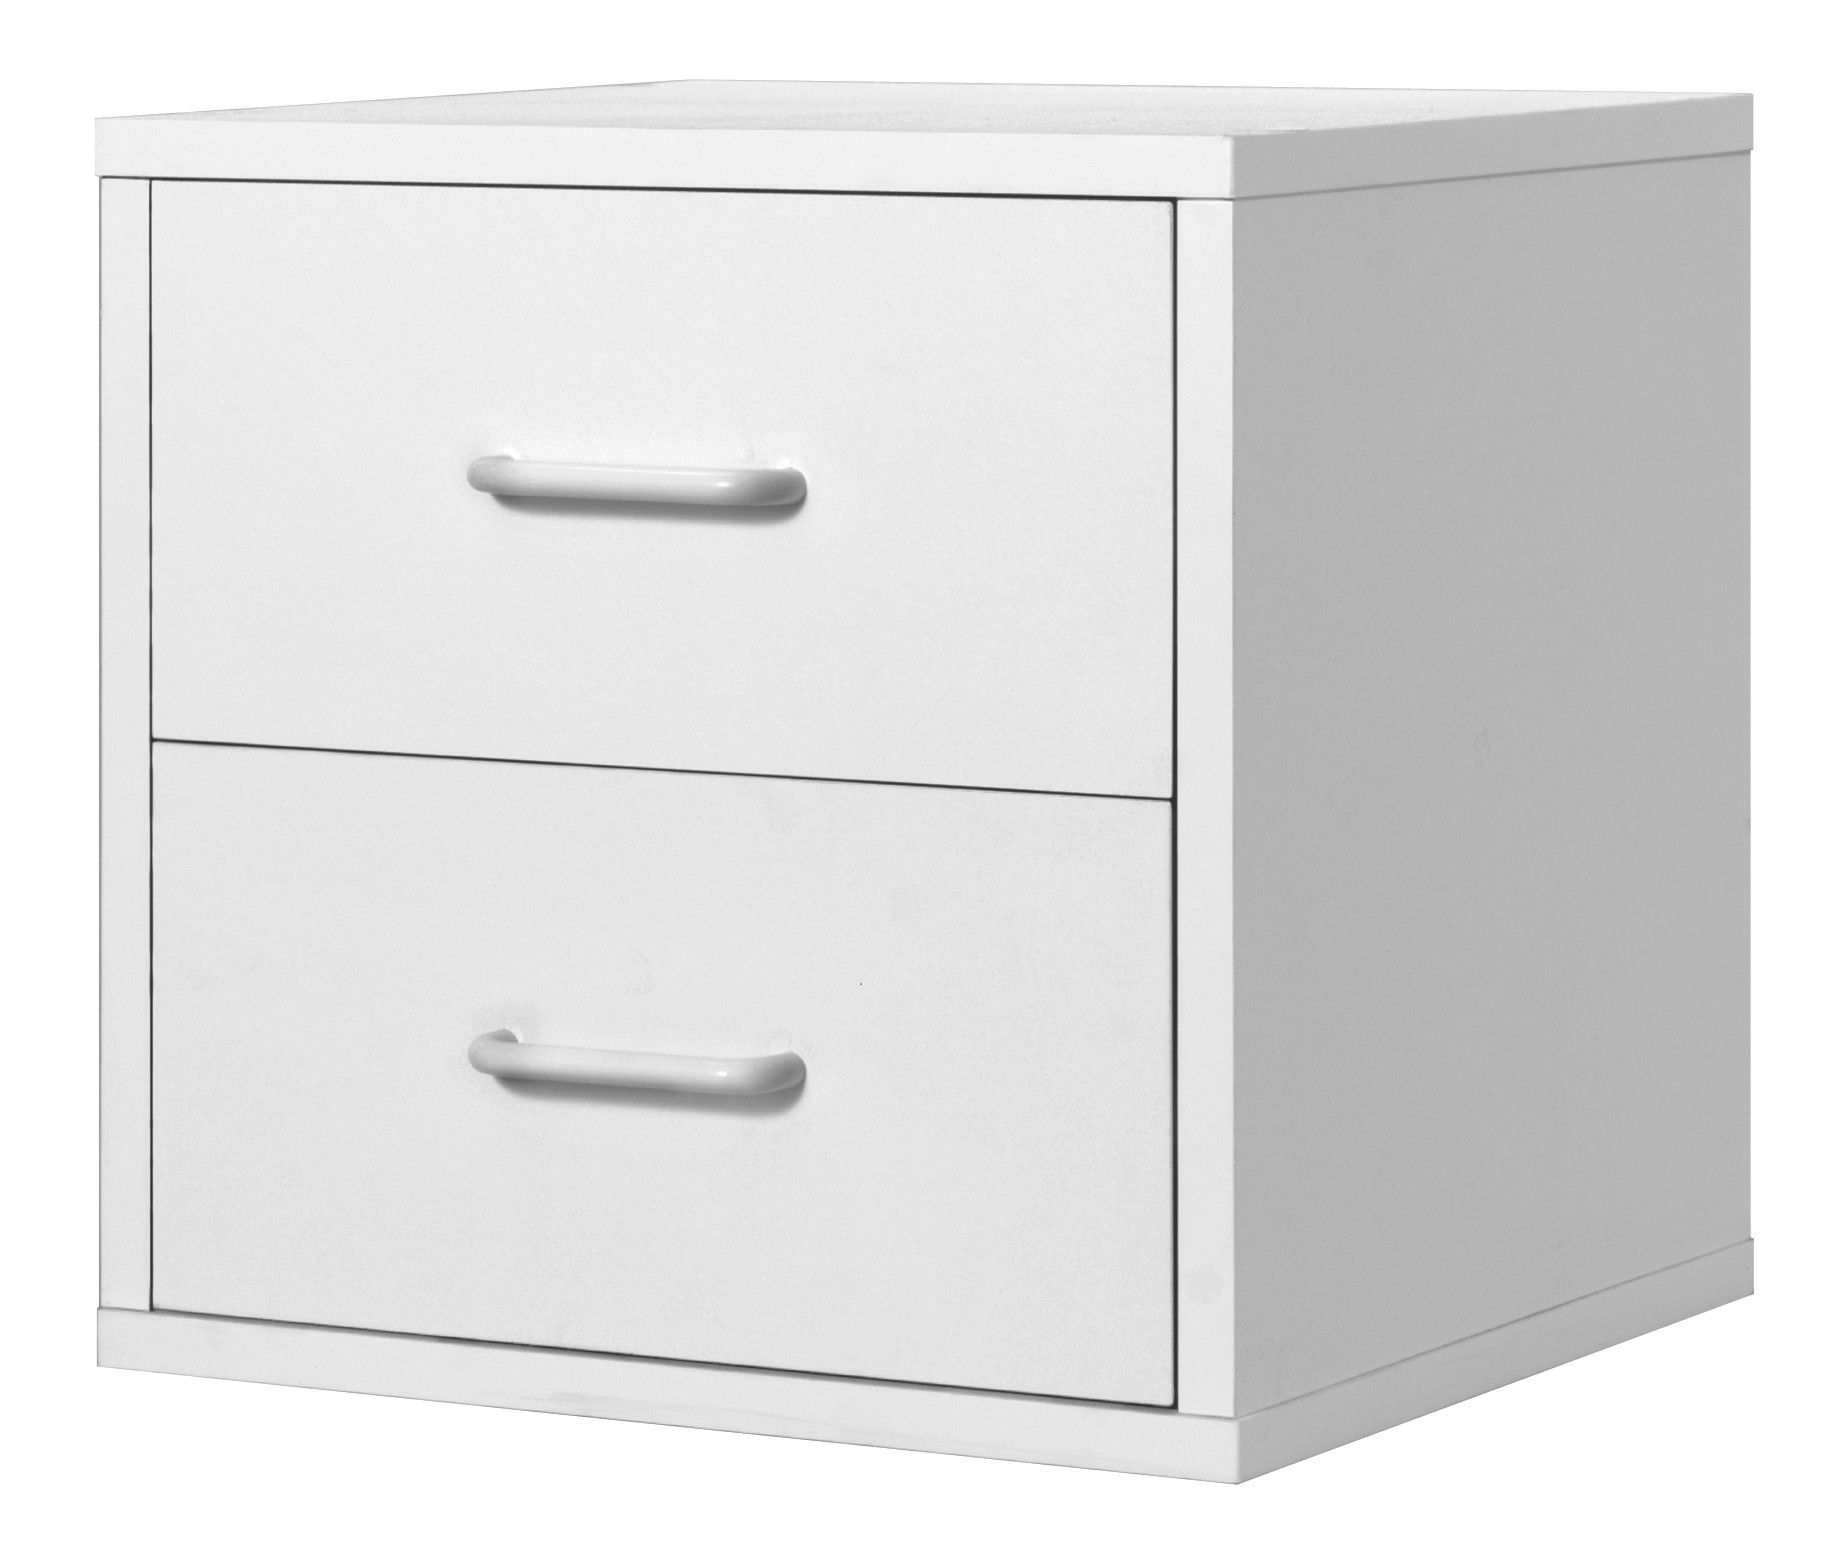 Foremost Modular Storage Cube With Two Drawers In White U0026 Reviews | Wayfair  Supply | Ingenious Organization! | Pinterest | Modular Storage, Storage  Cubes ...